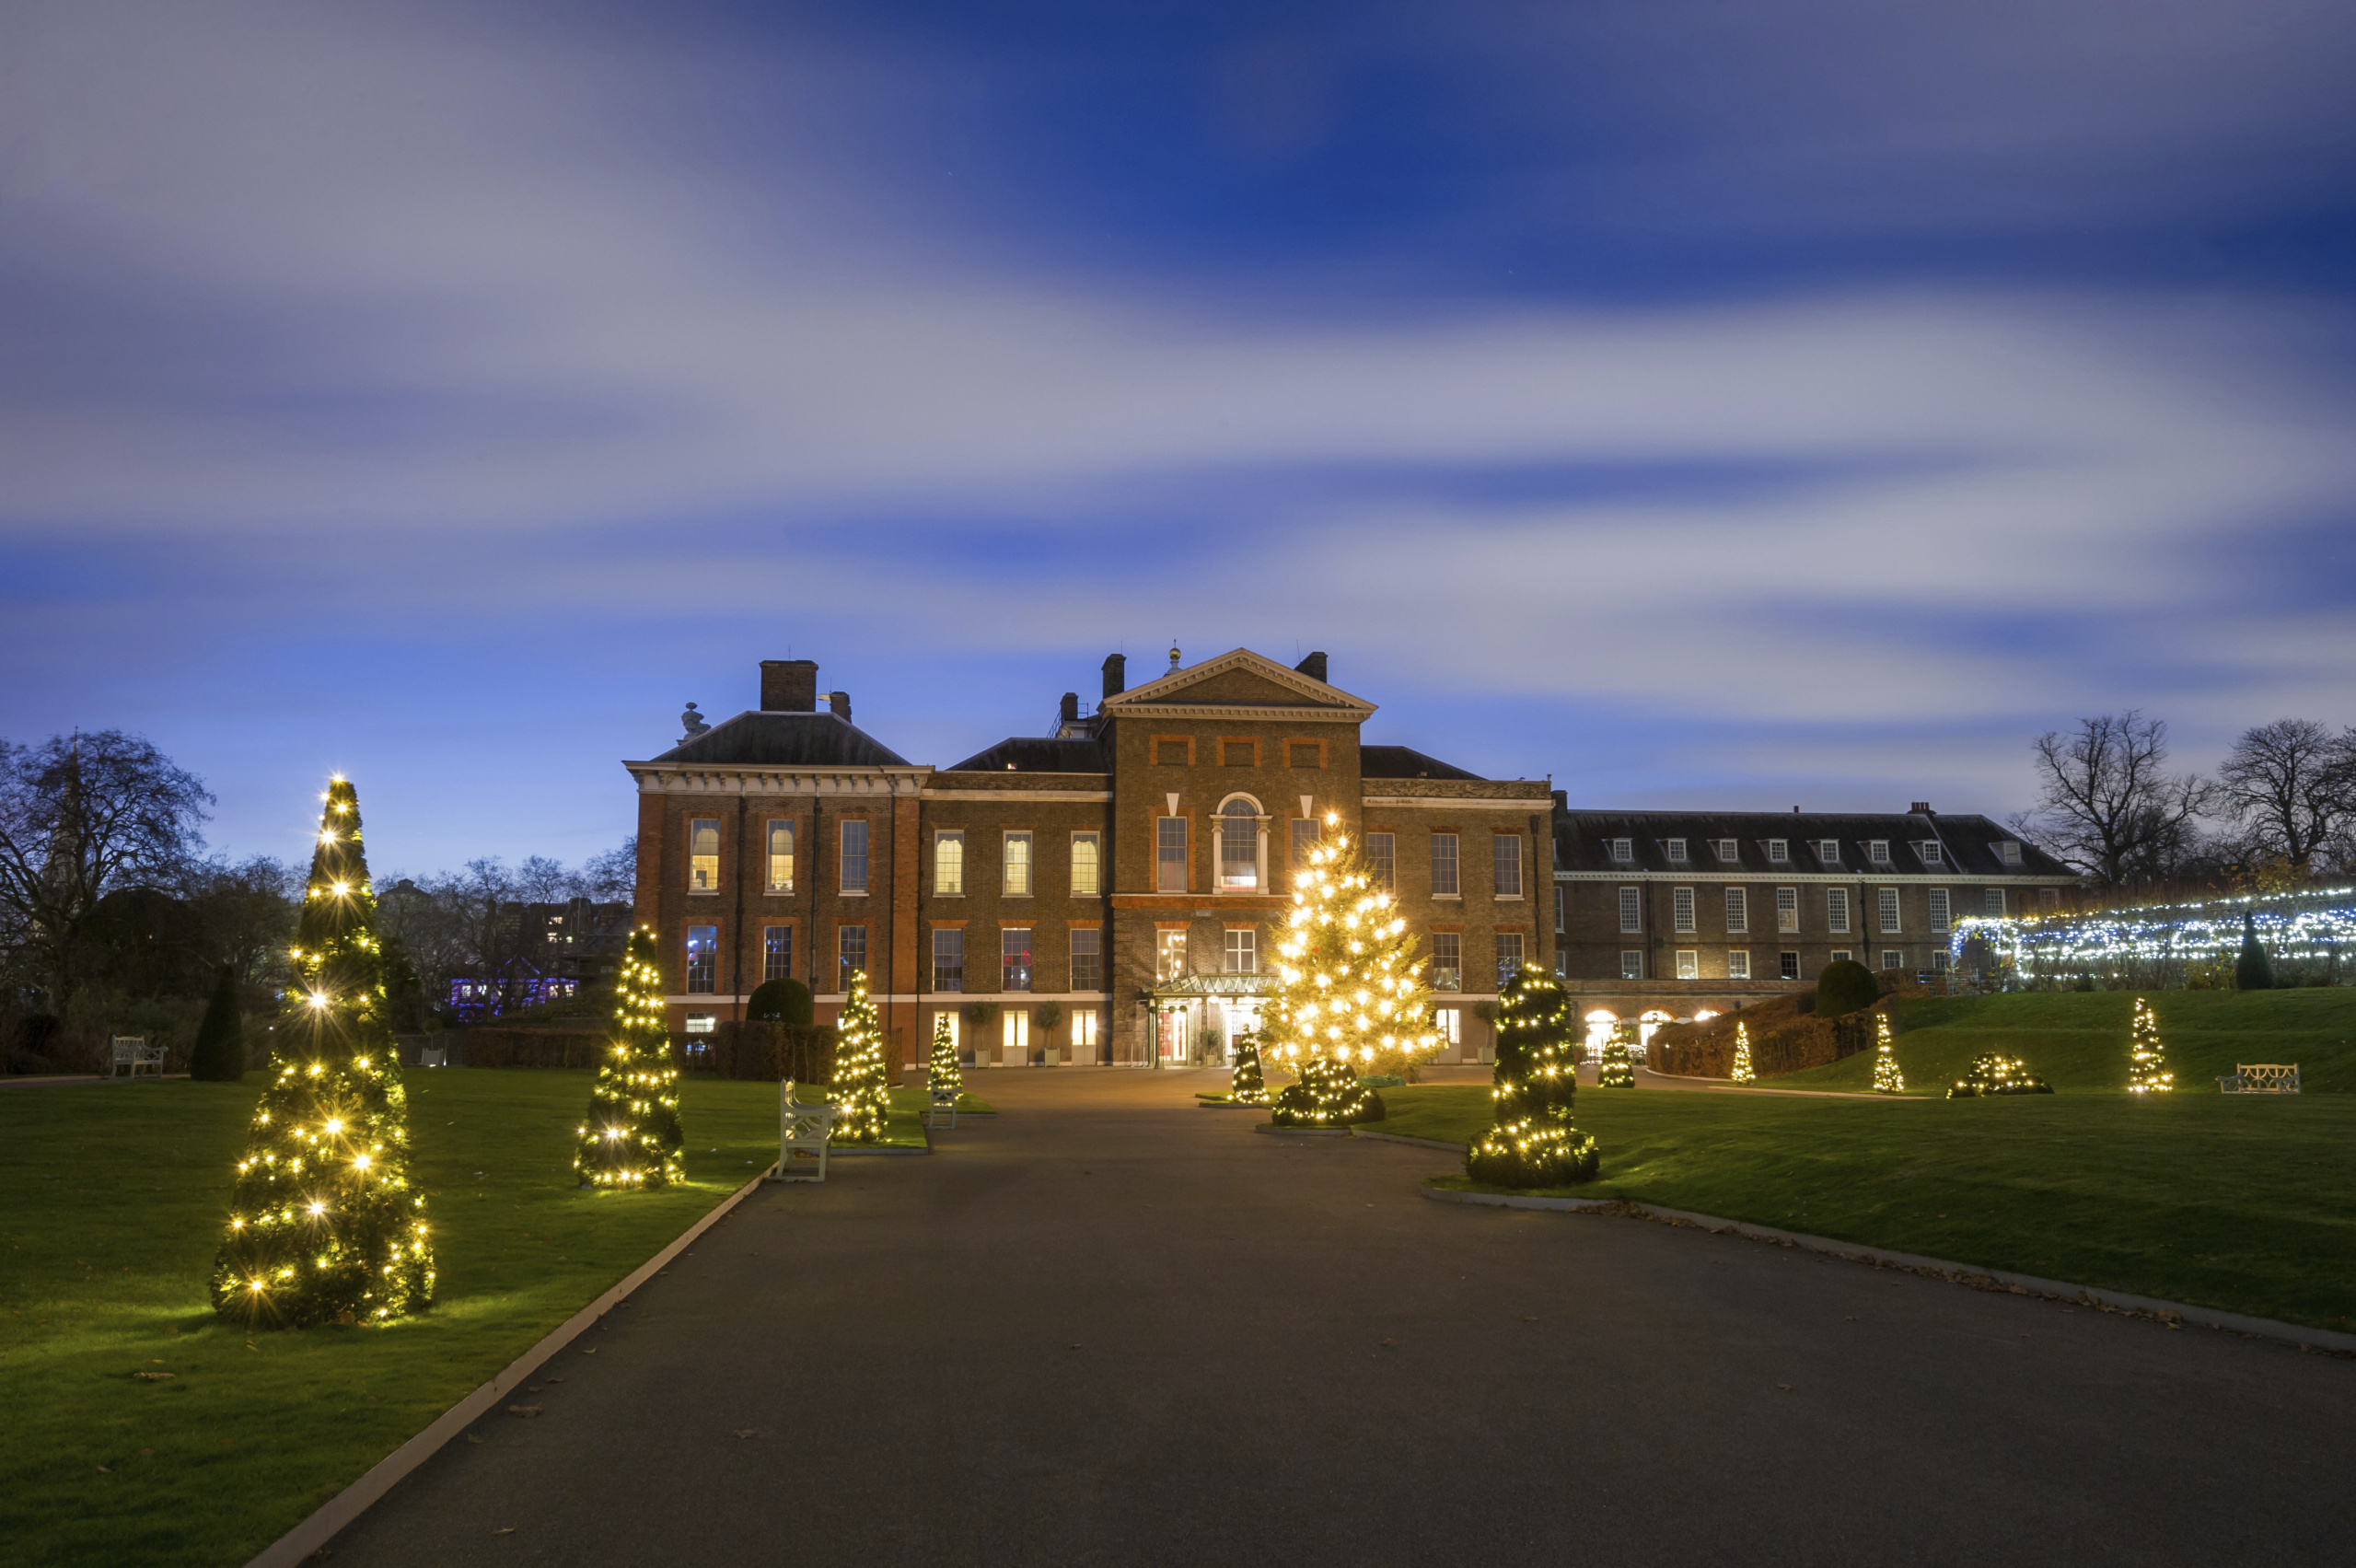 Kensington Palace Christmas